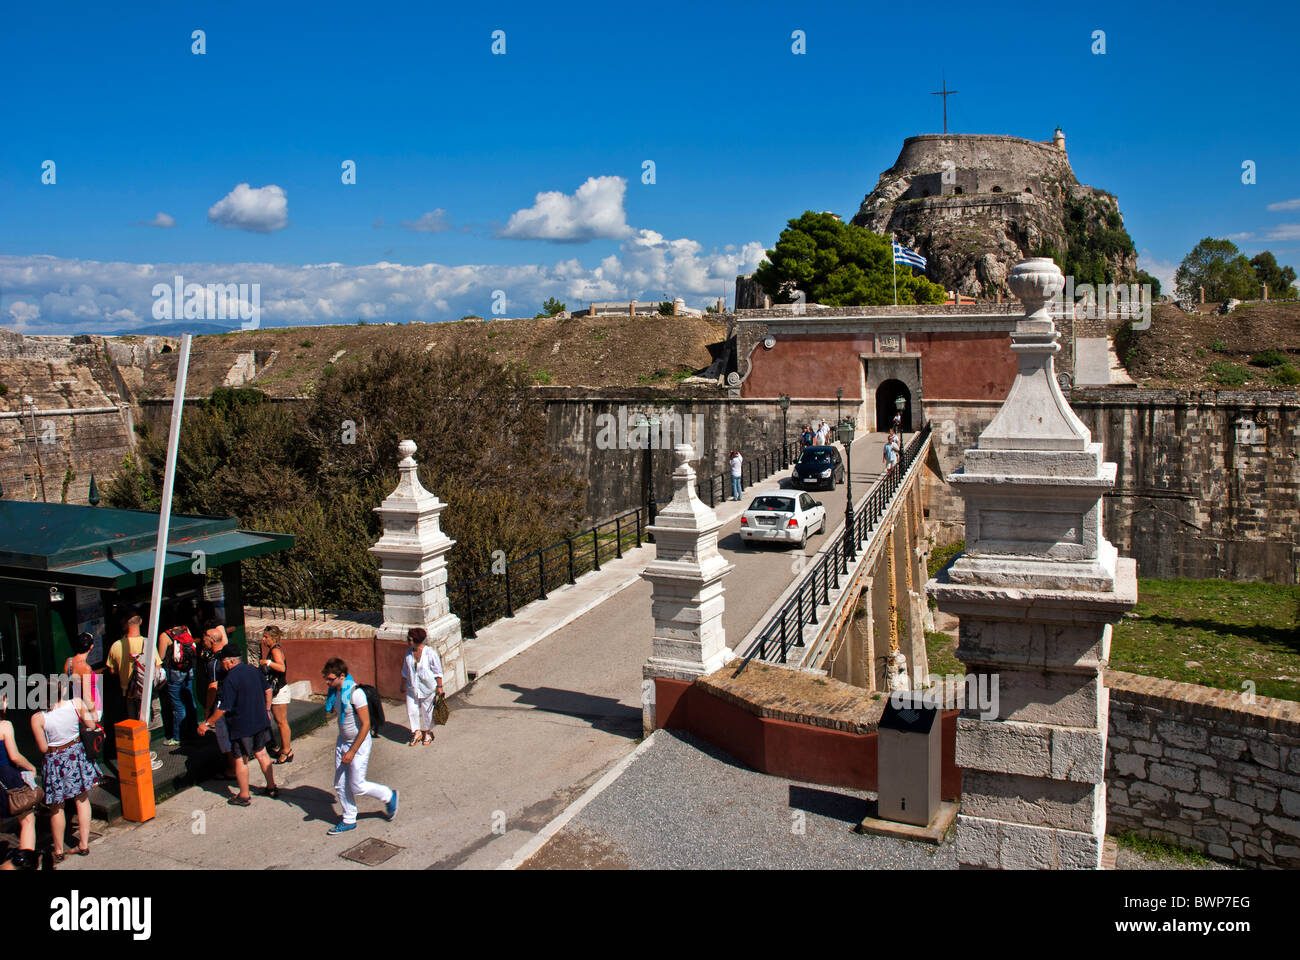 The Old Fortress in Corfu Town, Ionian Islands Greece. - Stock Image